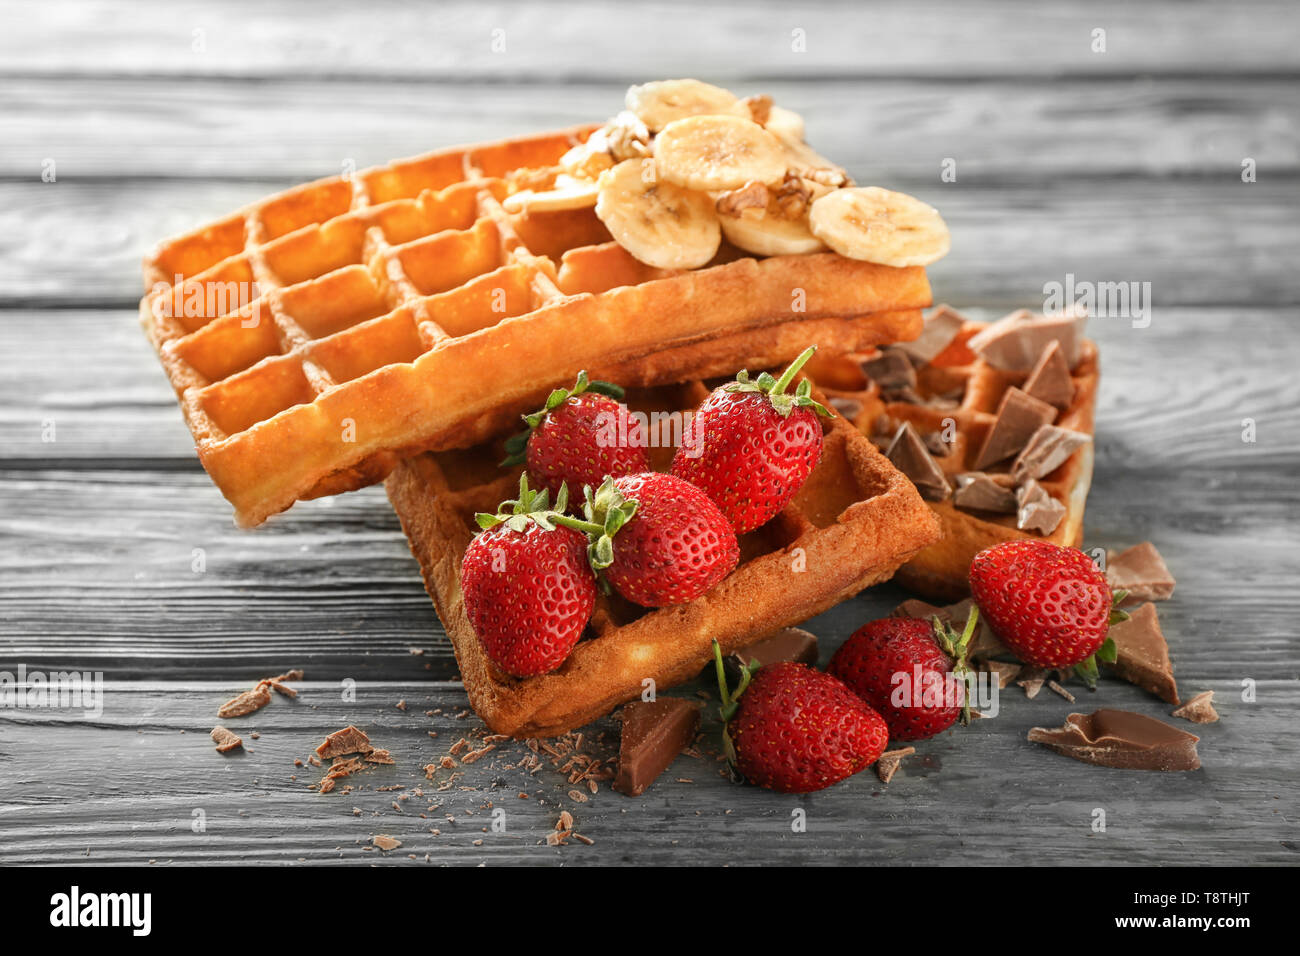 Delicious waffles with banana, berries and chocolate on wooden background - Stock Image